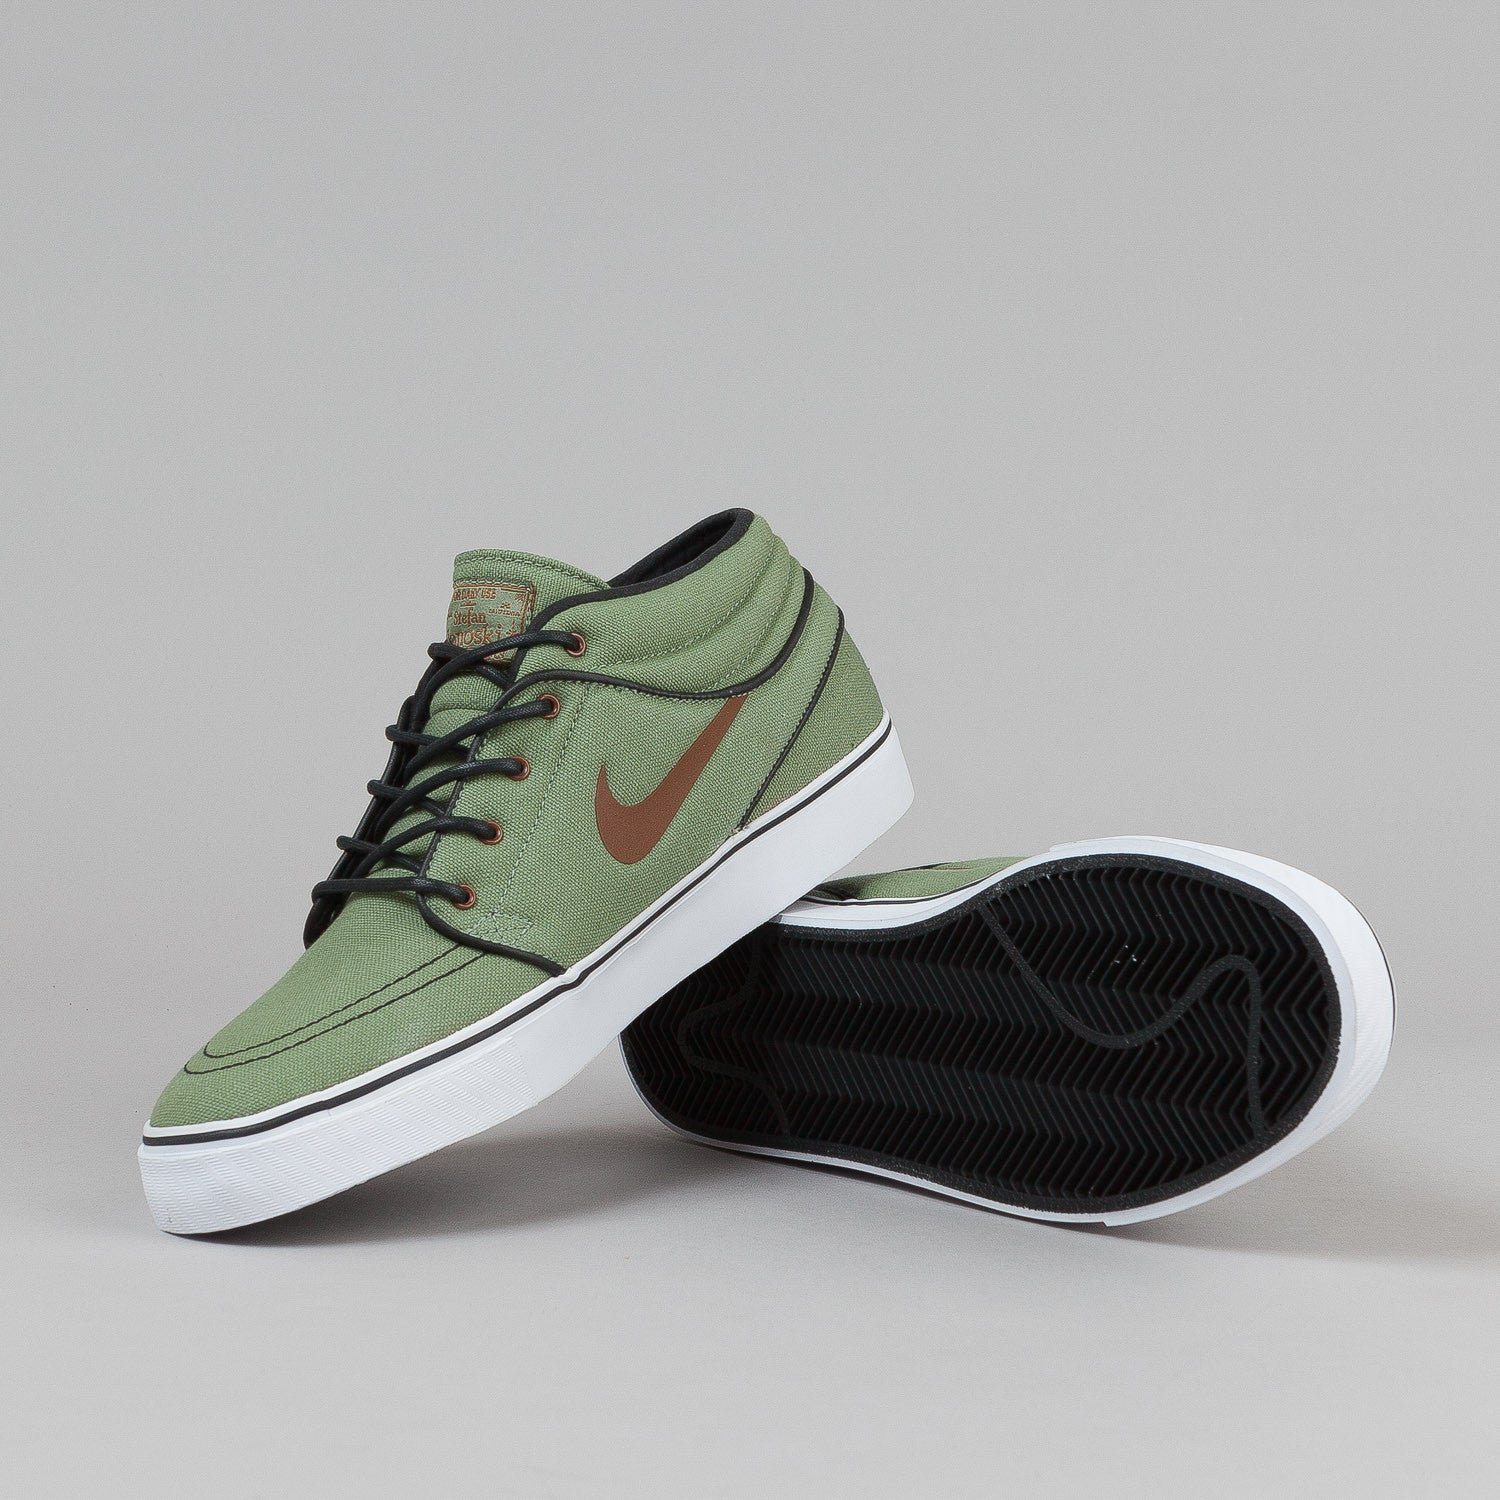 Nike SB Stefan Janoski Mid Shoes - Oil Green / Pecan